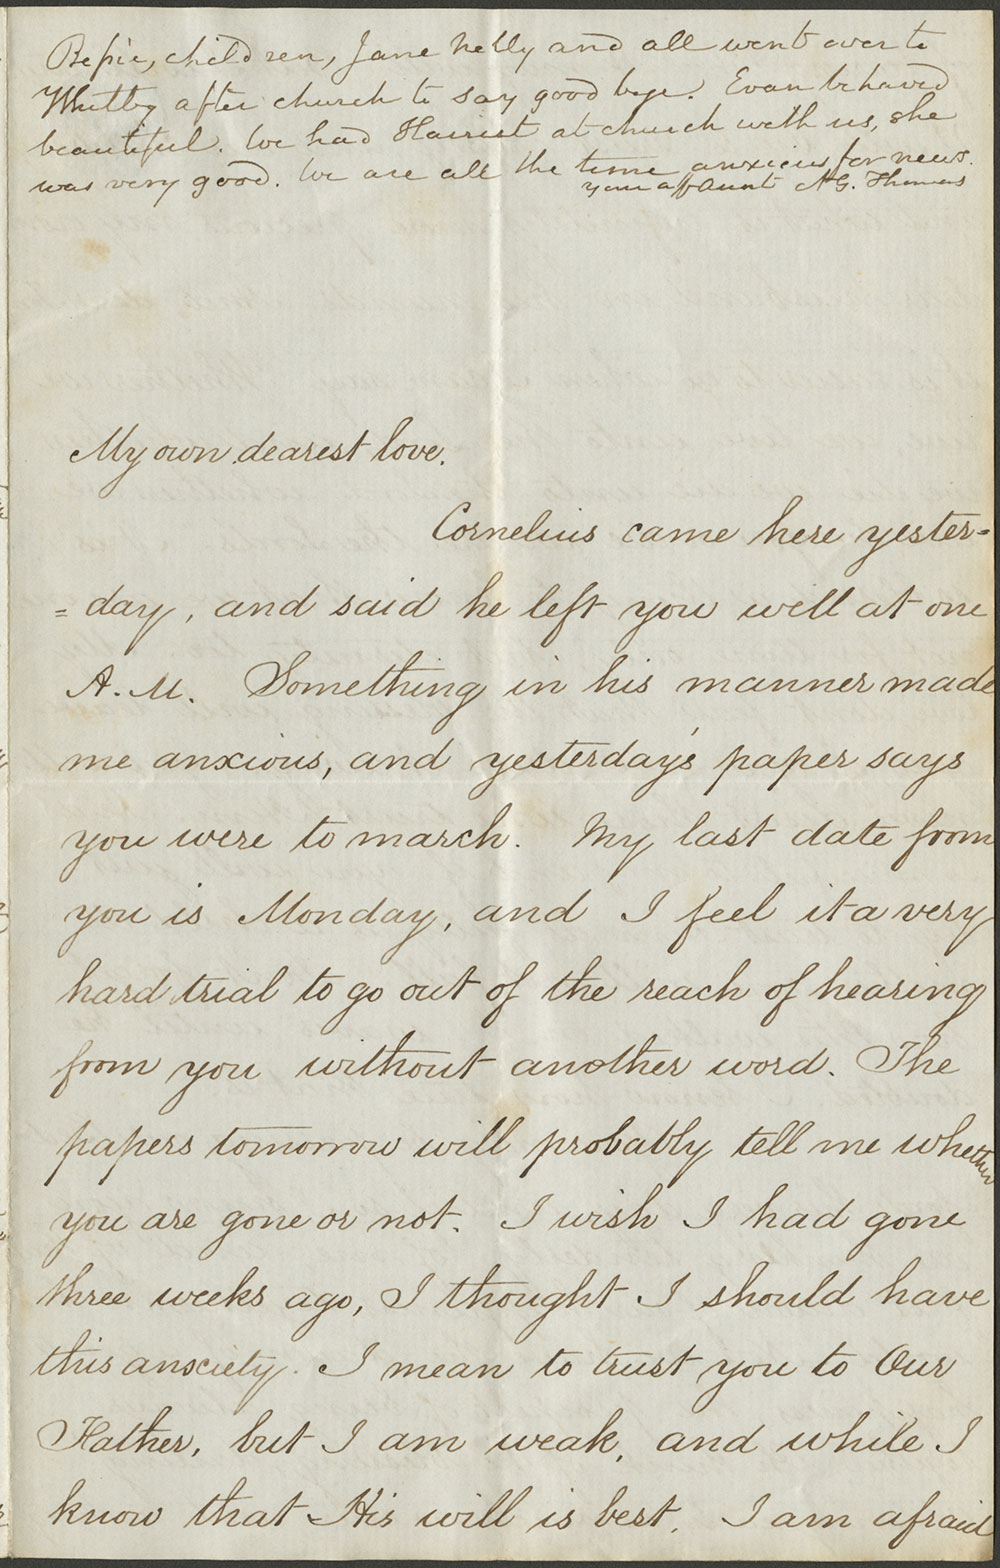 Elizabeth Kane to Thomas L. Kane. 21 June, 1861 (Vault MSS 792, Box 21, Folder 1, Item 29)